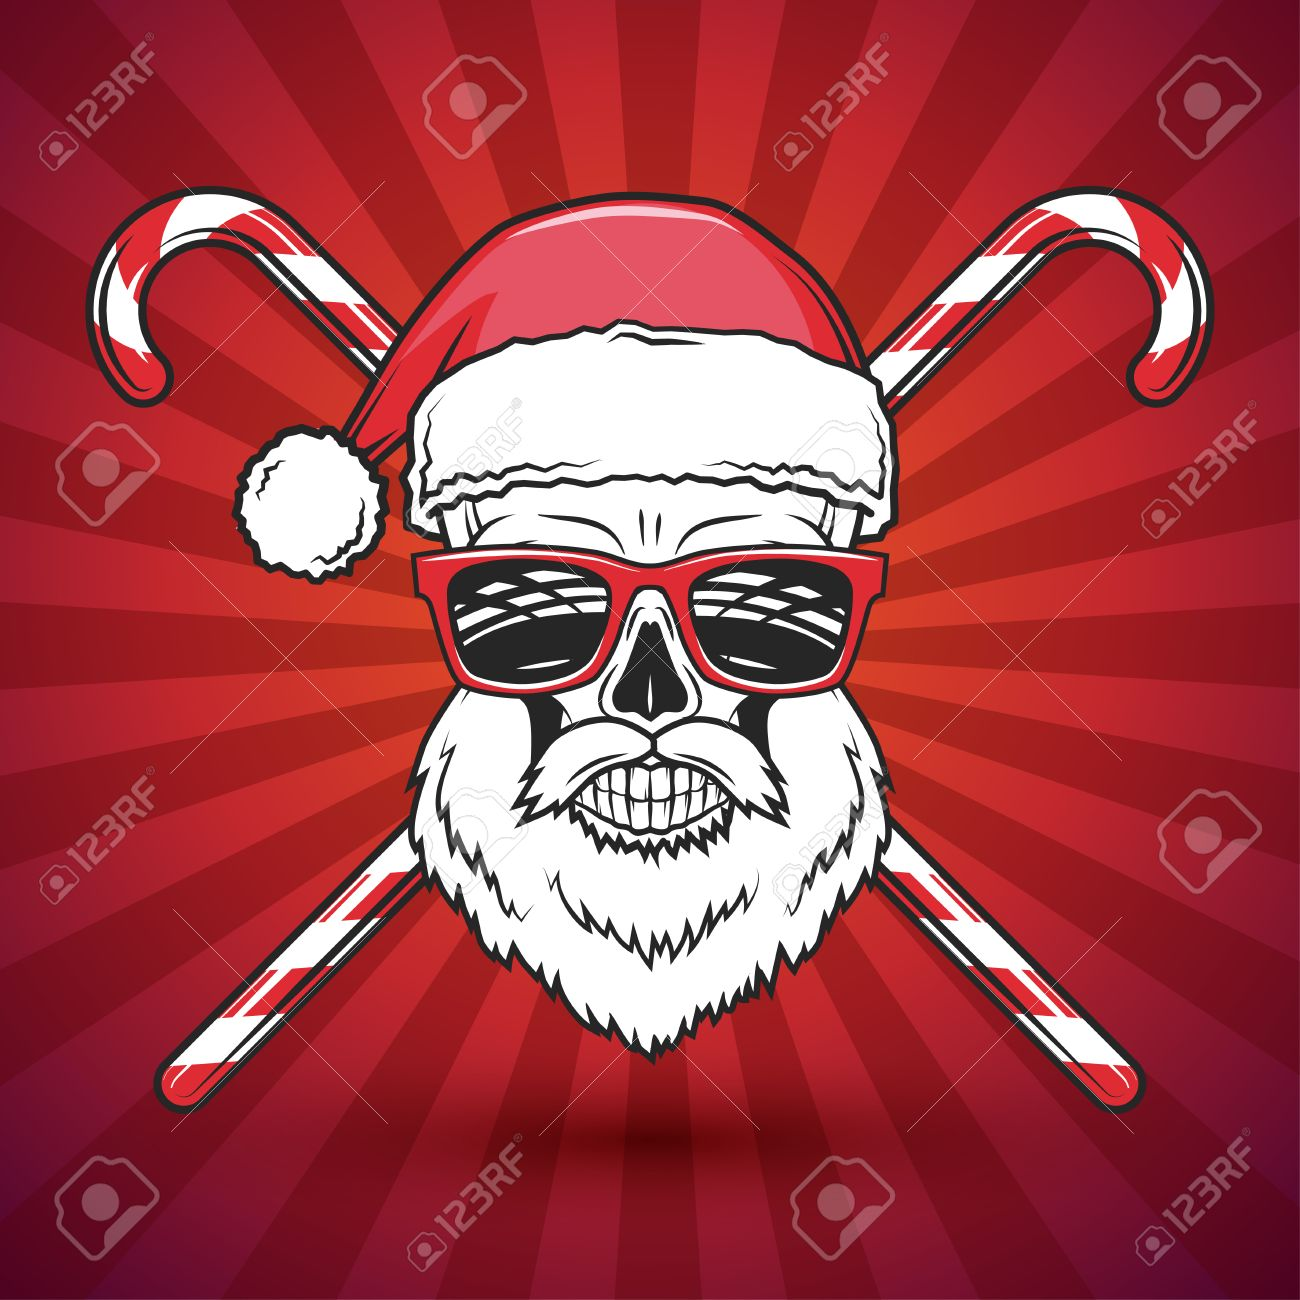 Heavy Metal Christmas.Bad Santa Claus Biker With Candy Print Design Heavy Metal Christmas